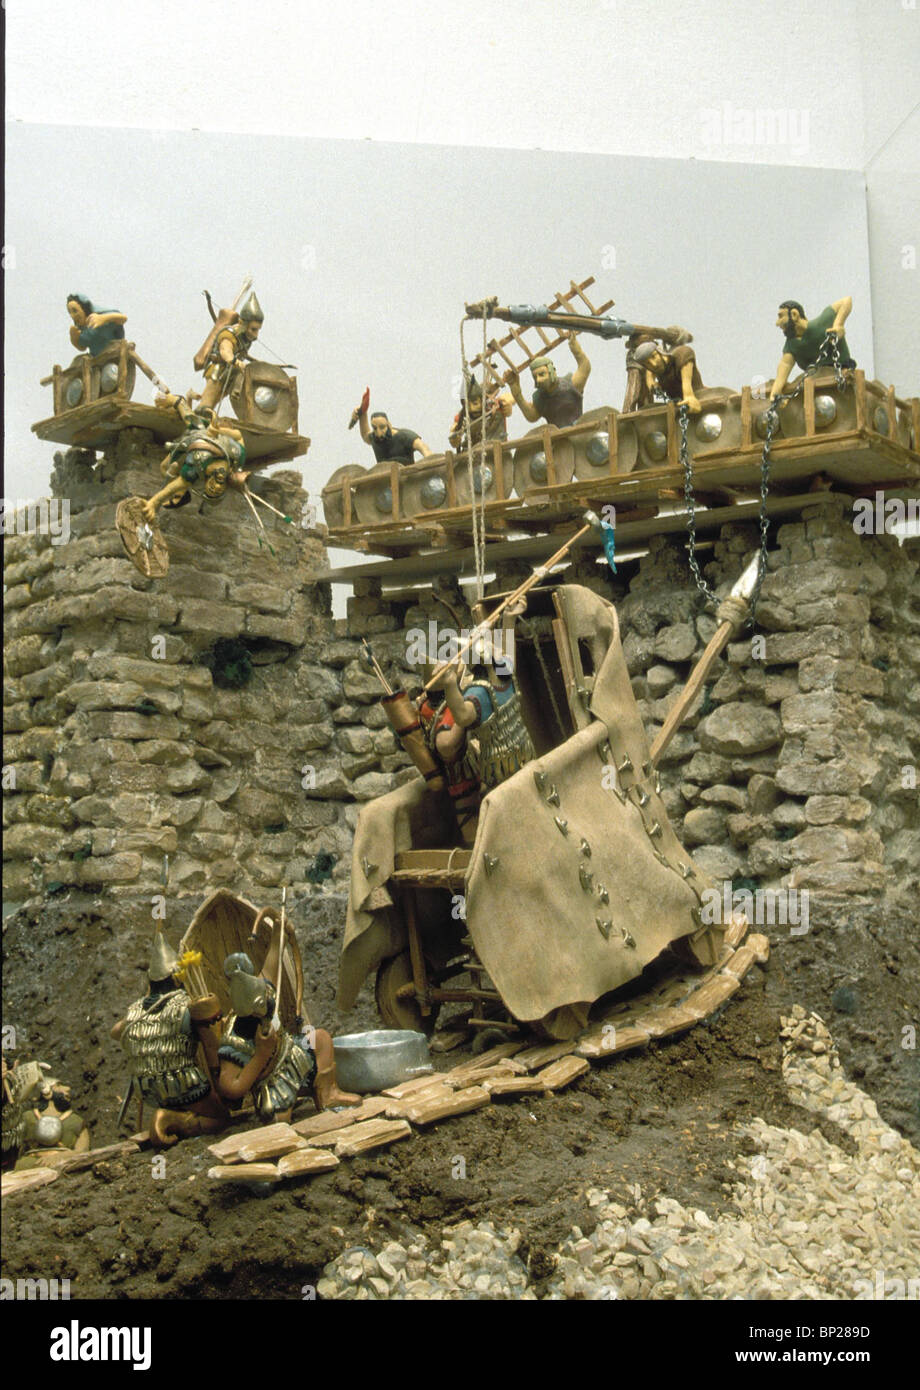 1970. MODEL OF ASSIRIAN WALL-RAMMING MACHINE (ACCORDING TO RELIEFS IN THE 7TH. C. BC. PALACE IN NINVEH) - Stock Image